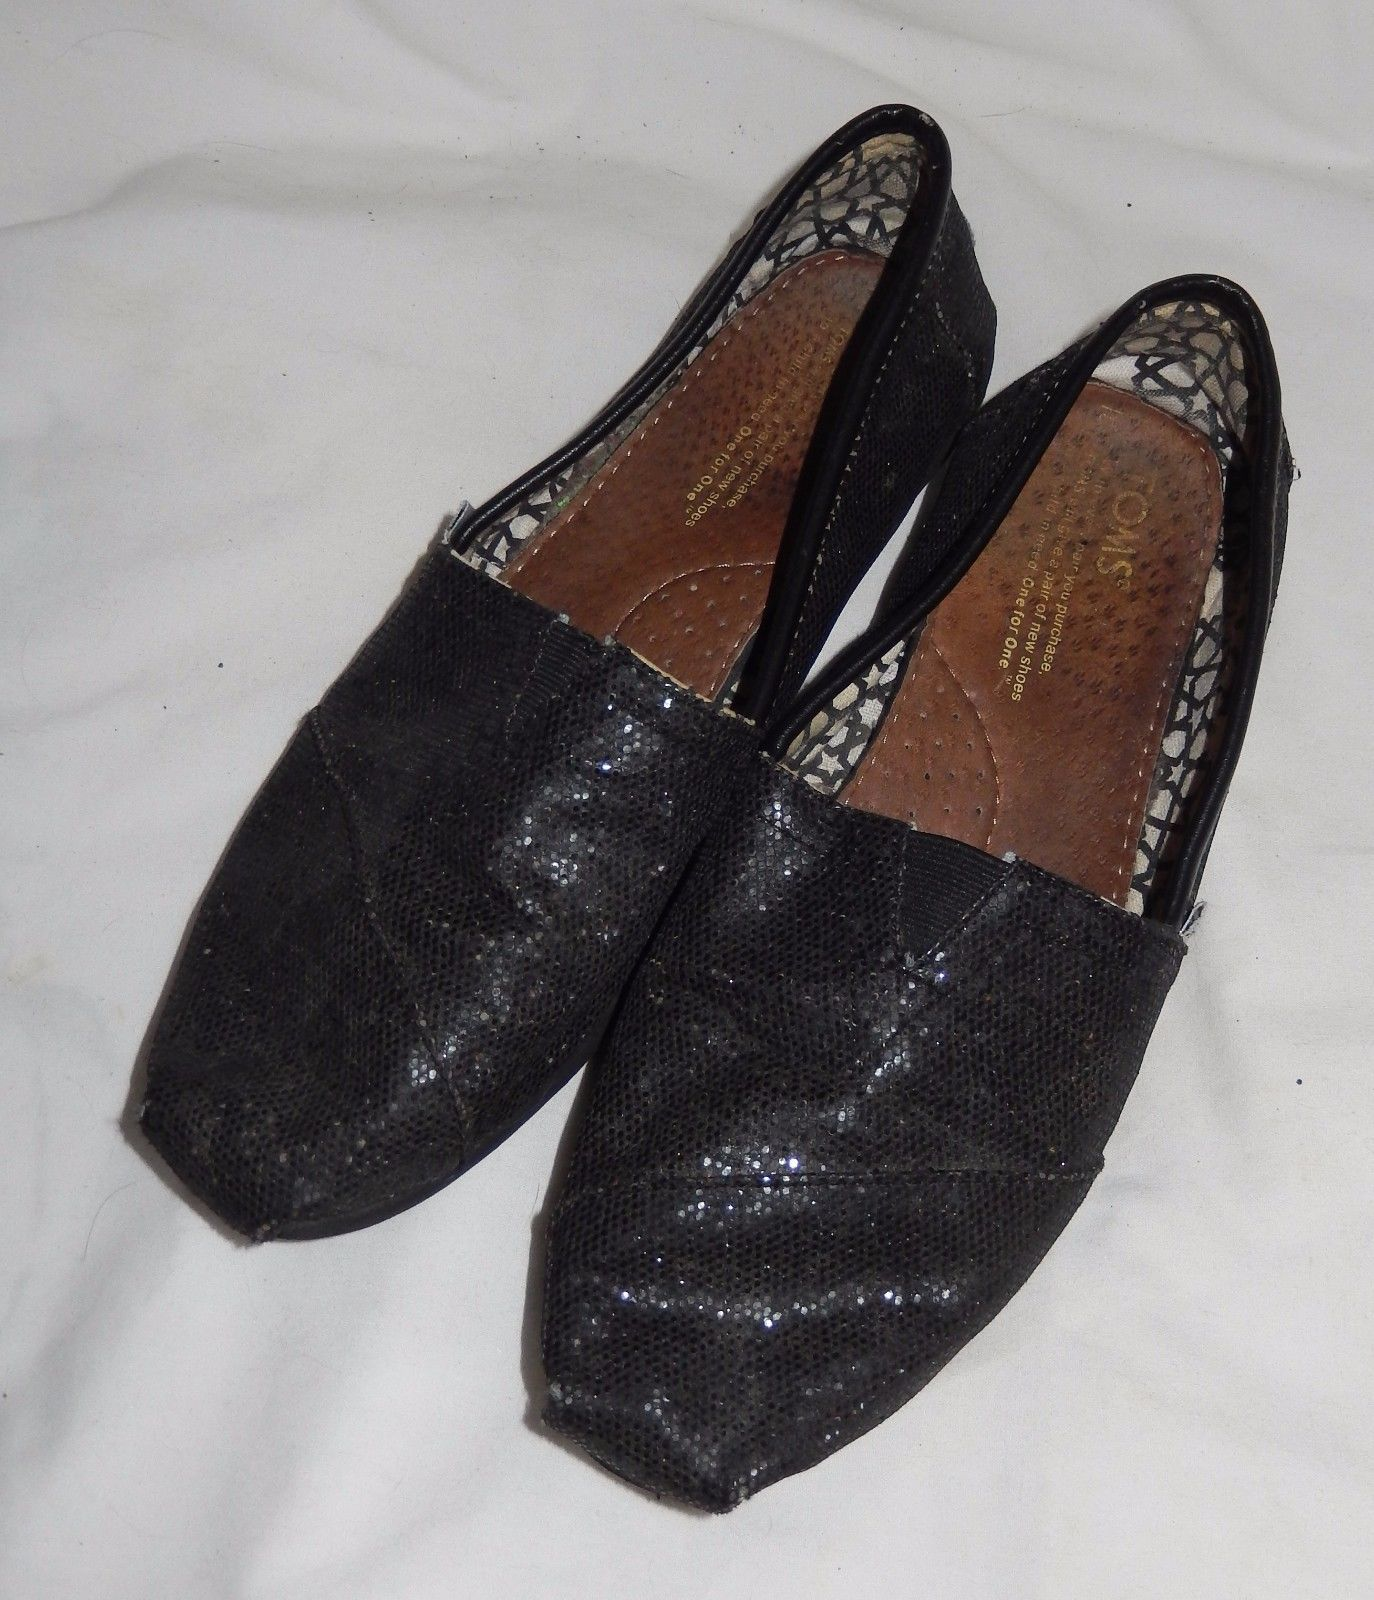 4ed3002a591 S l1600. S l1600. Previous. TOMS Black Glittery Shiny Classic Canvas Slip  On Shoes Loafers Women s Size 6.5